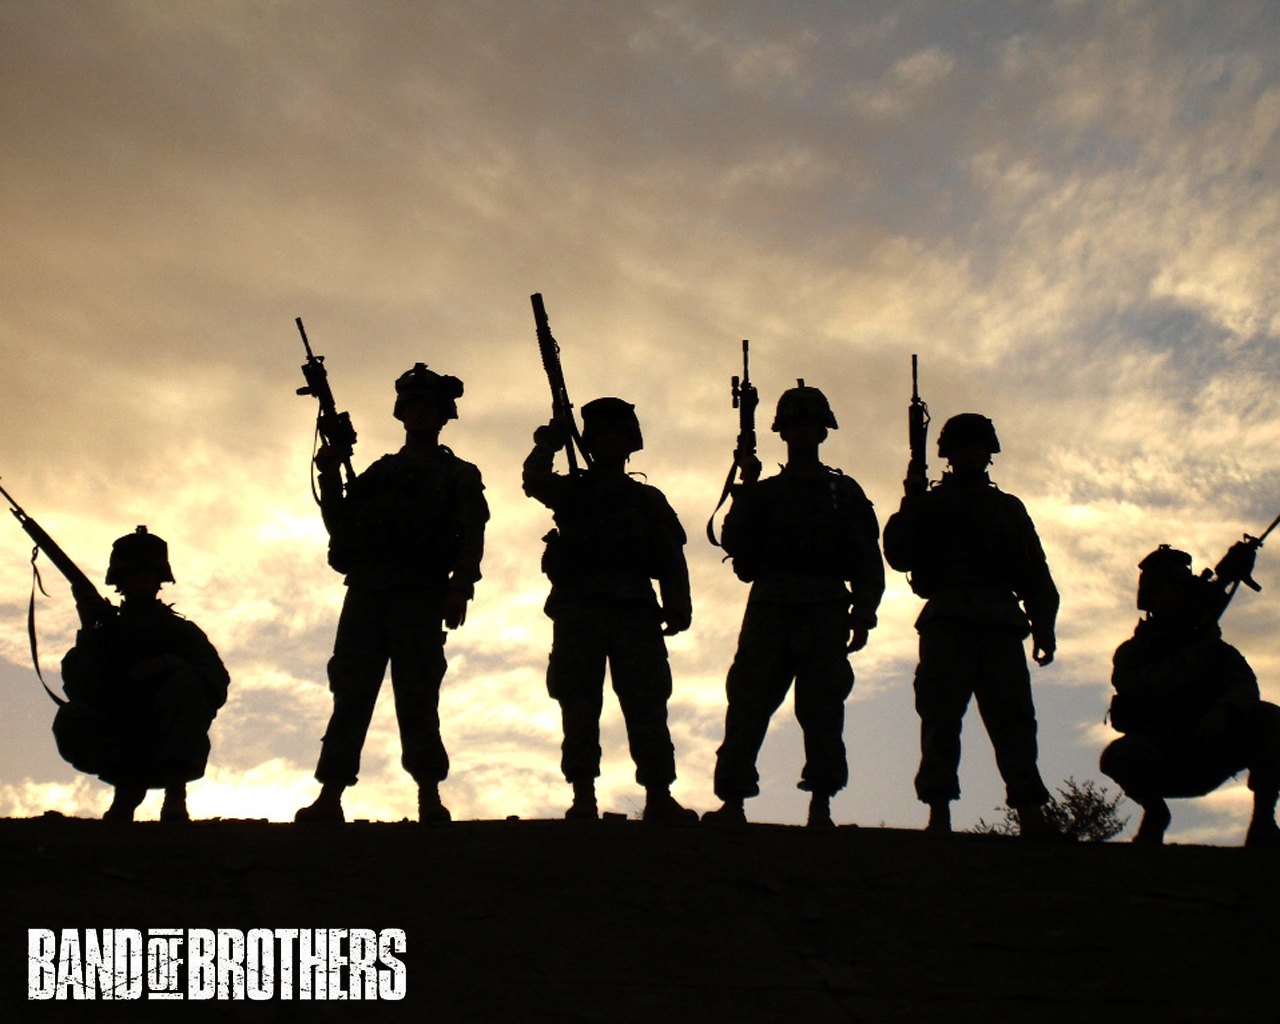 10+ images about Band of Brothers on Pinterest | TVs, War band and